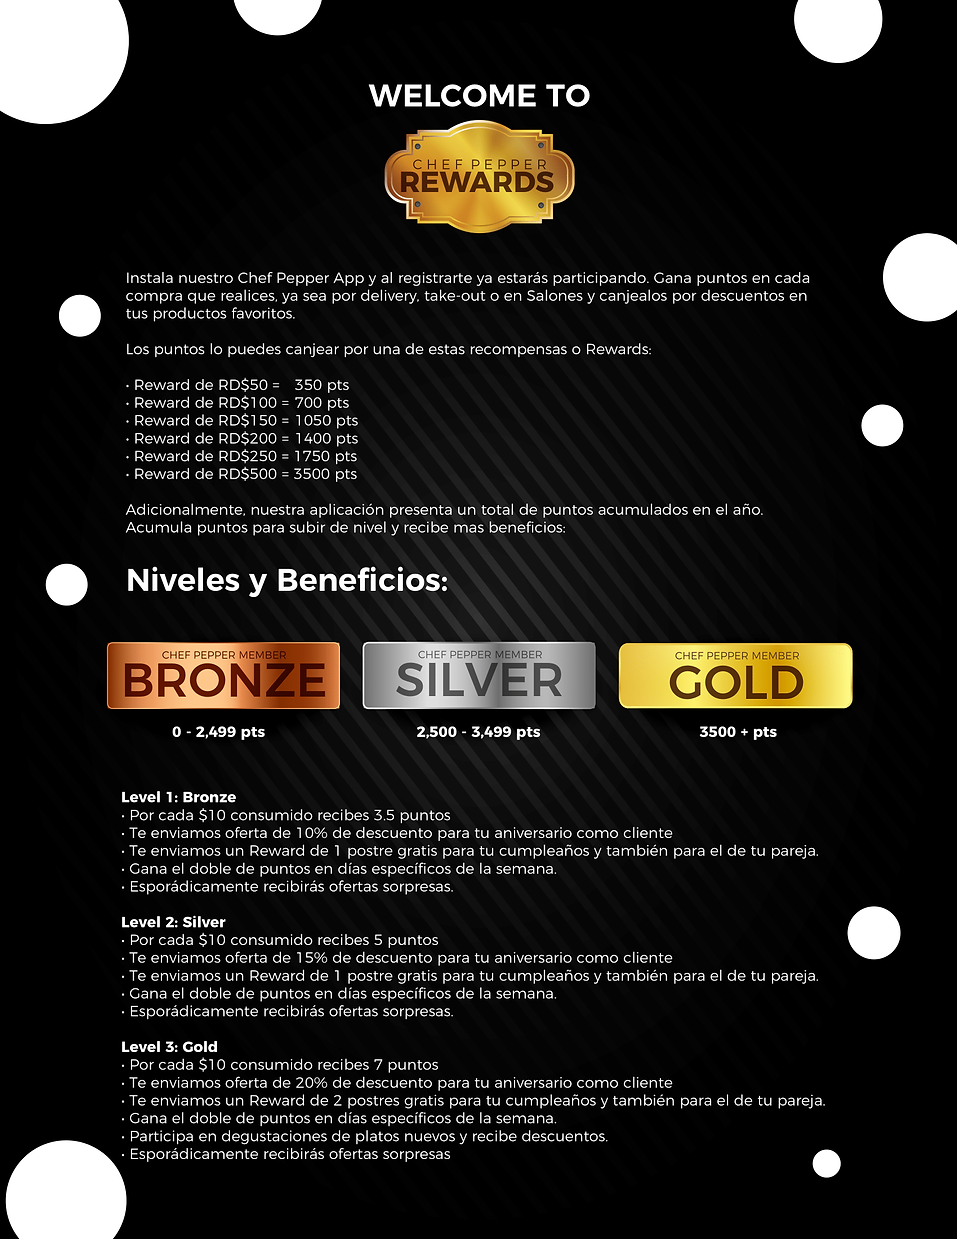 Chef Pepper Rewards Actualizado 3 (1) (2